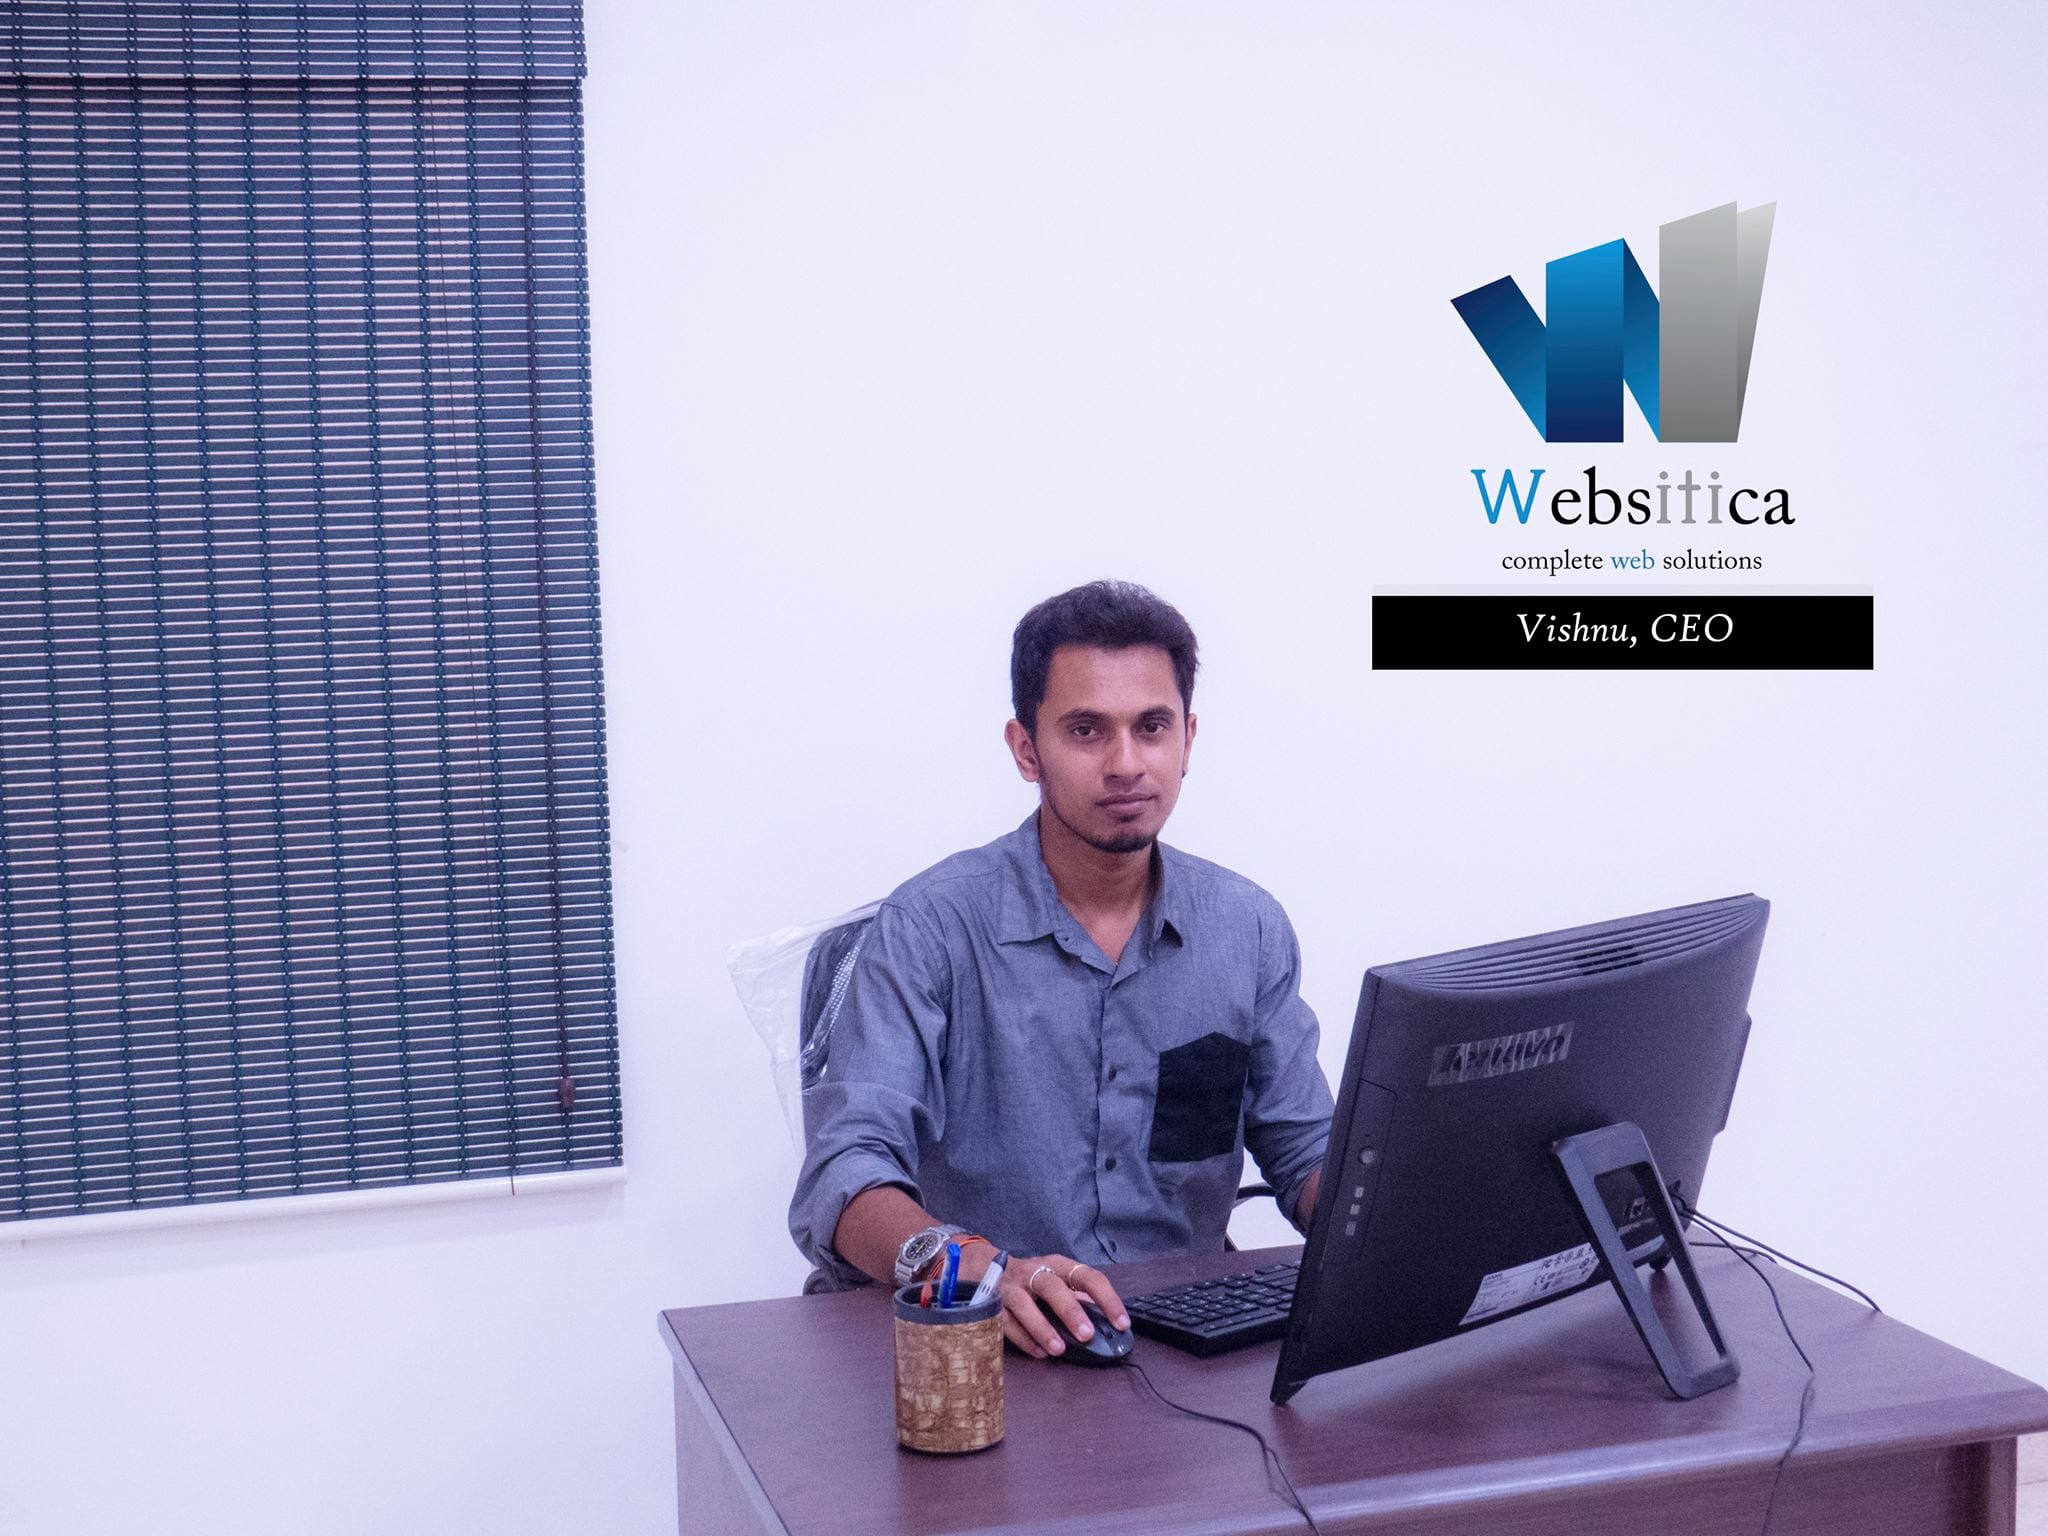 Vishnu CEO - Websitica